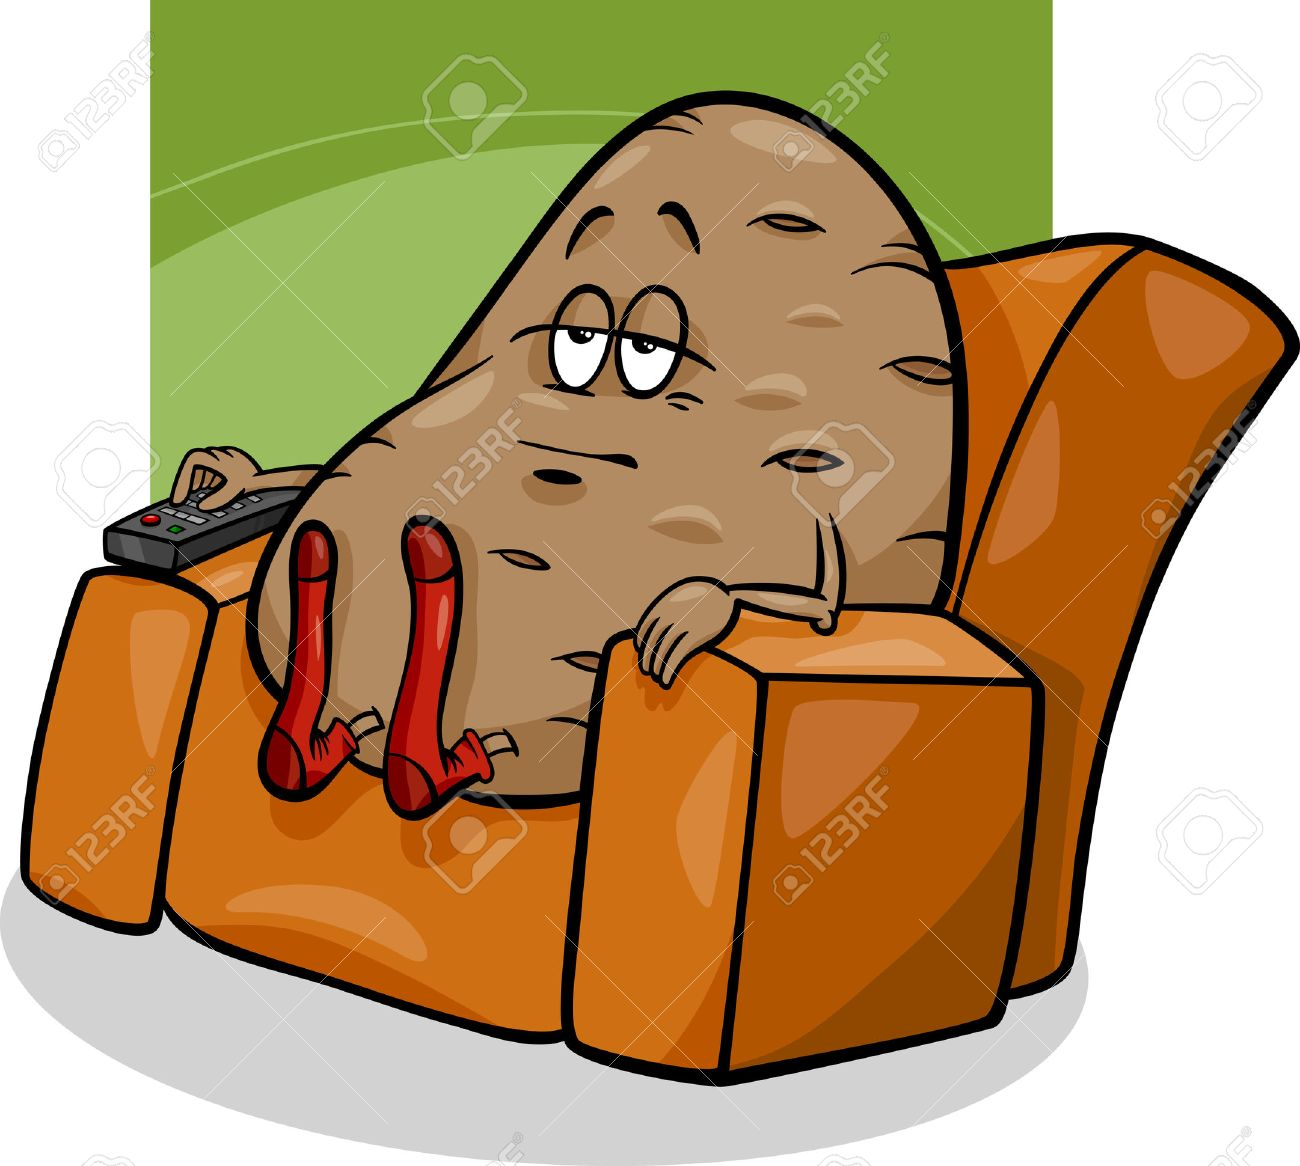 hight resolution of cartoon humor concept illustration of couch potato saying or proverb